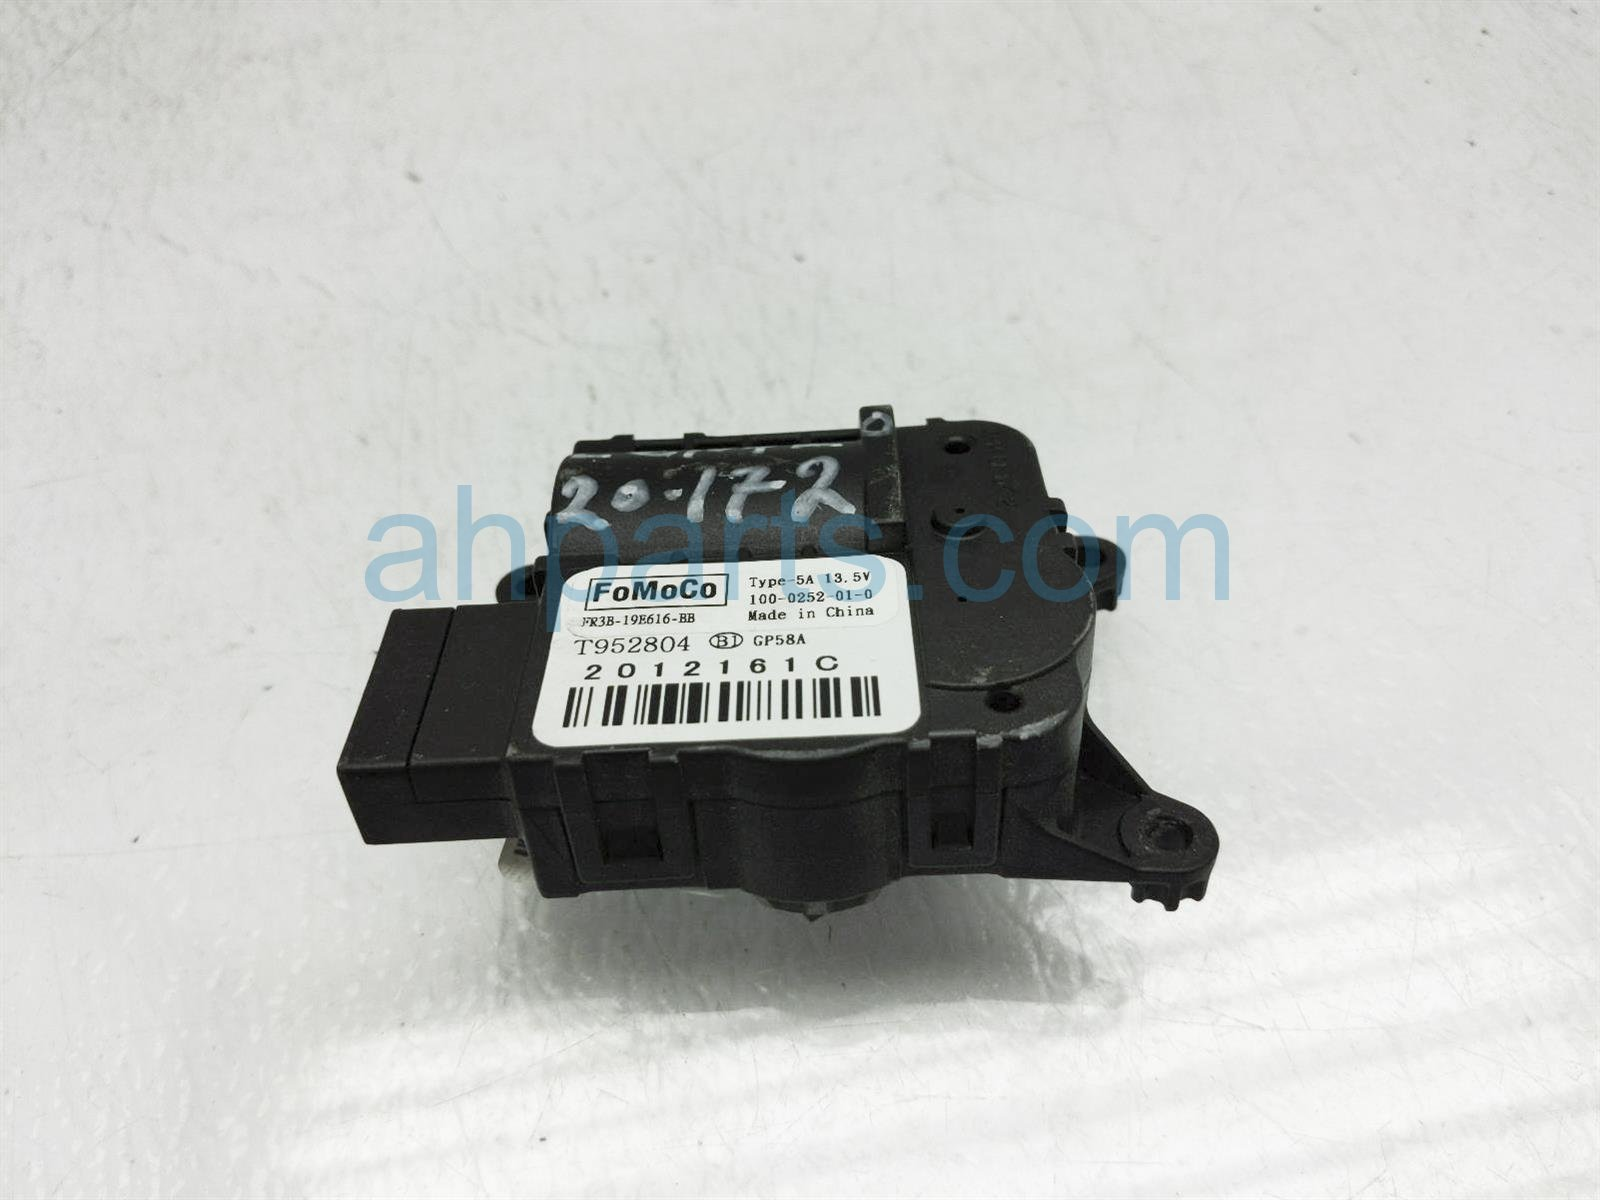 2017 Ford Mustang Hvac Air Adjustment Control Meter FR3Z 19E616 E Replacement